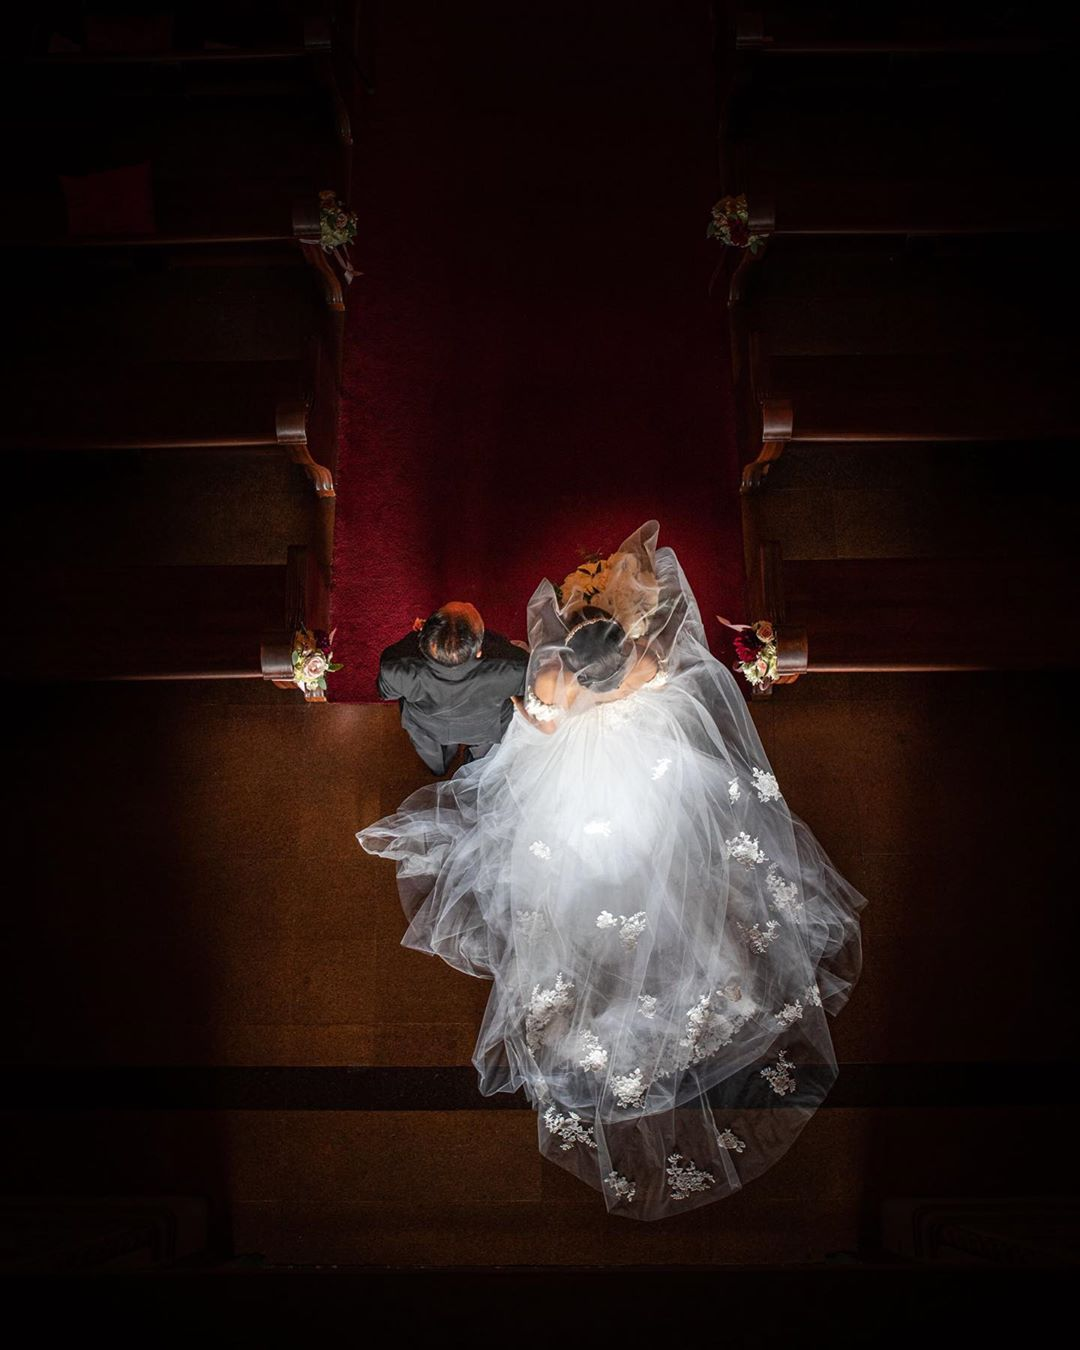 Aerial shot of a bride walking down the aisle with her father